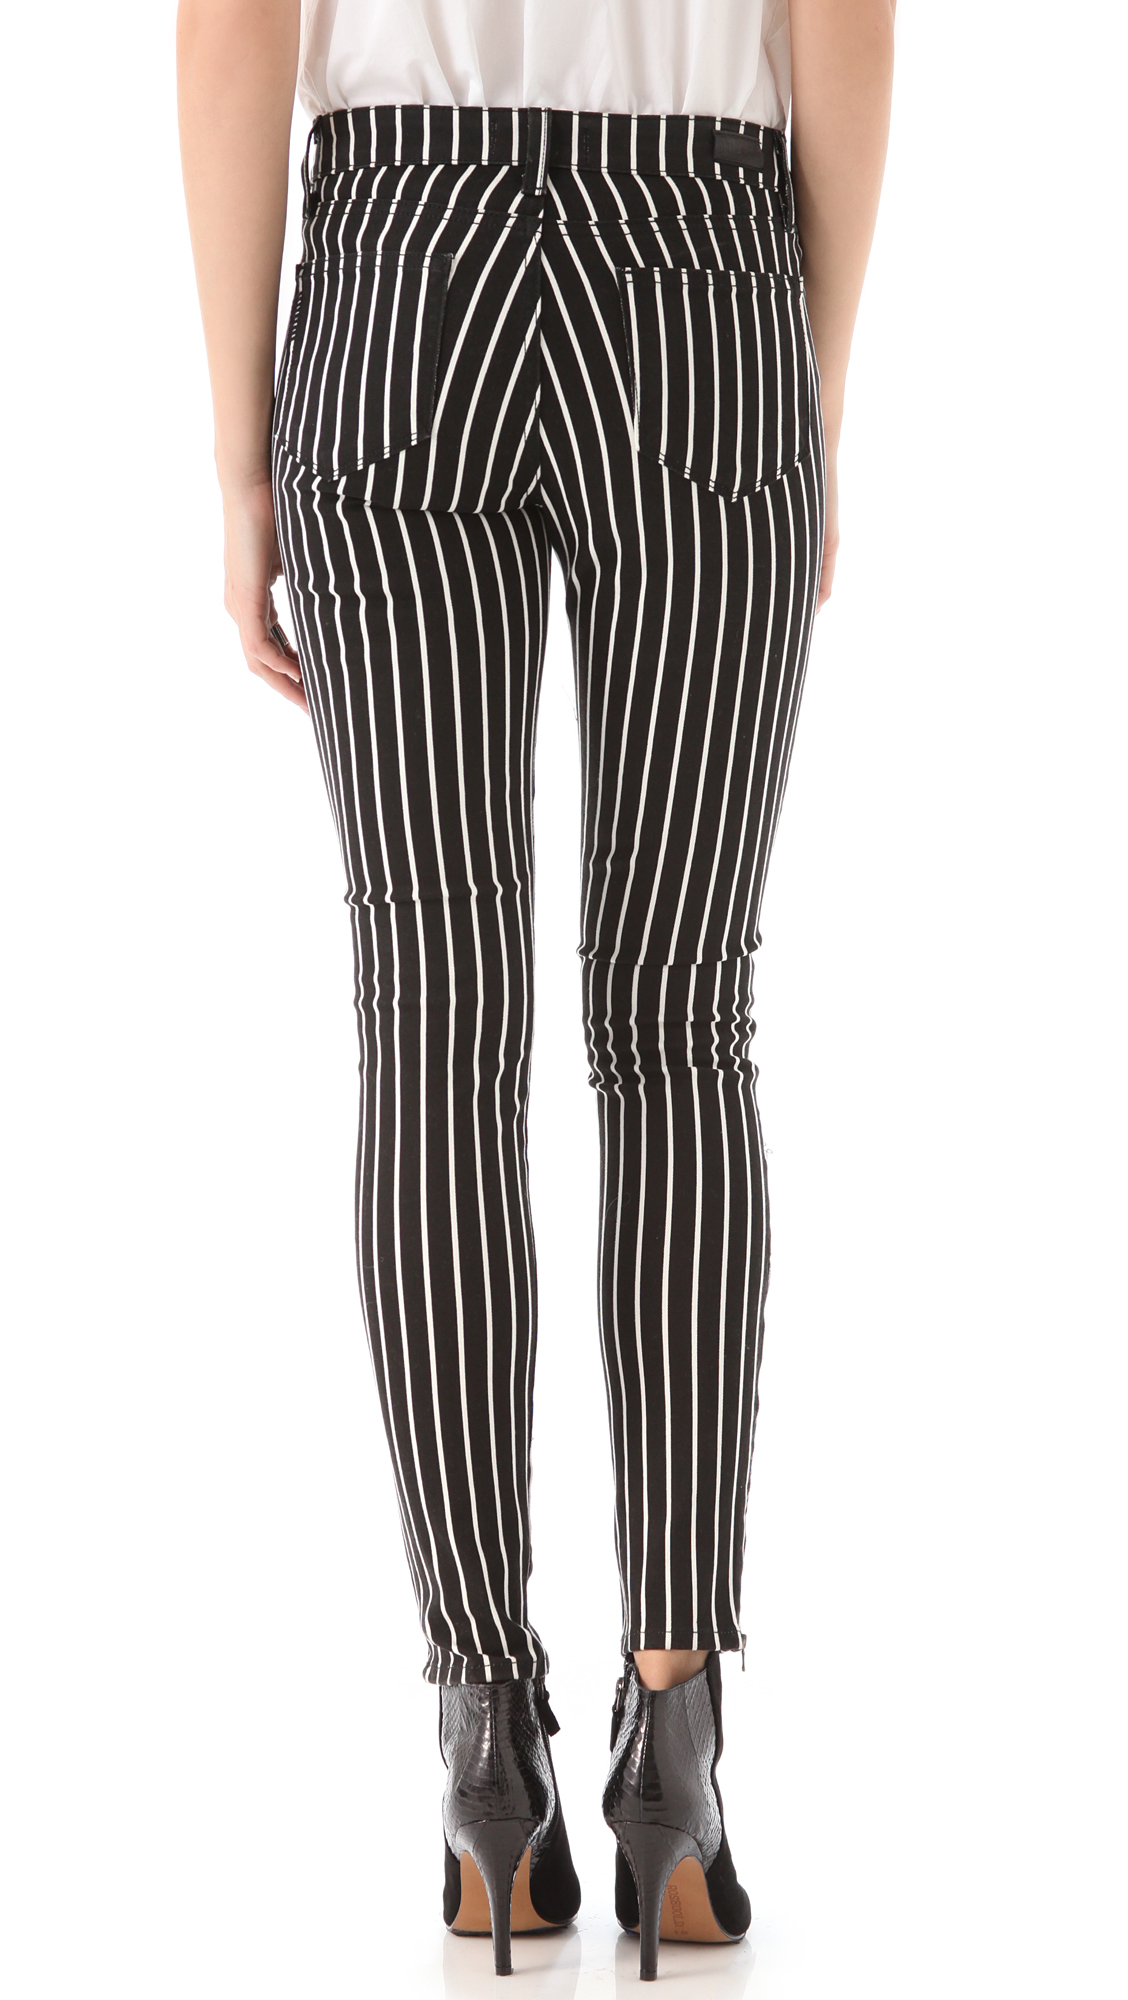 Paige Hoxton Striped Skinny Jeans in Black | Lyst